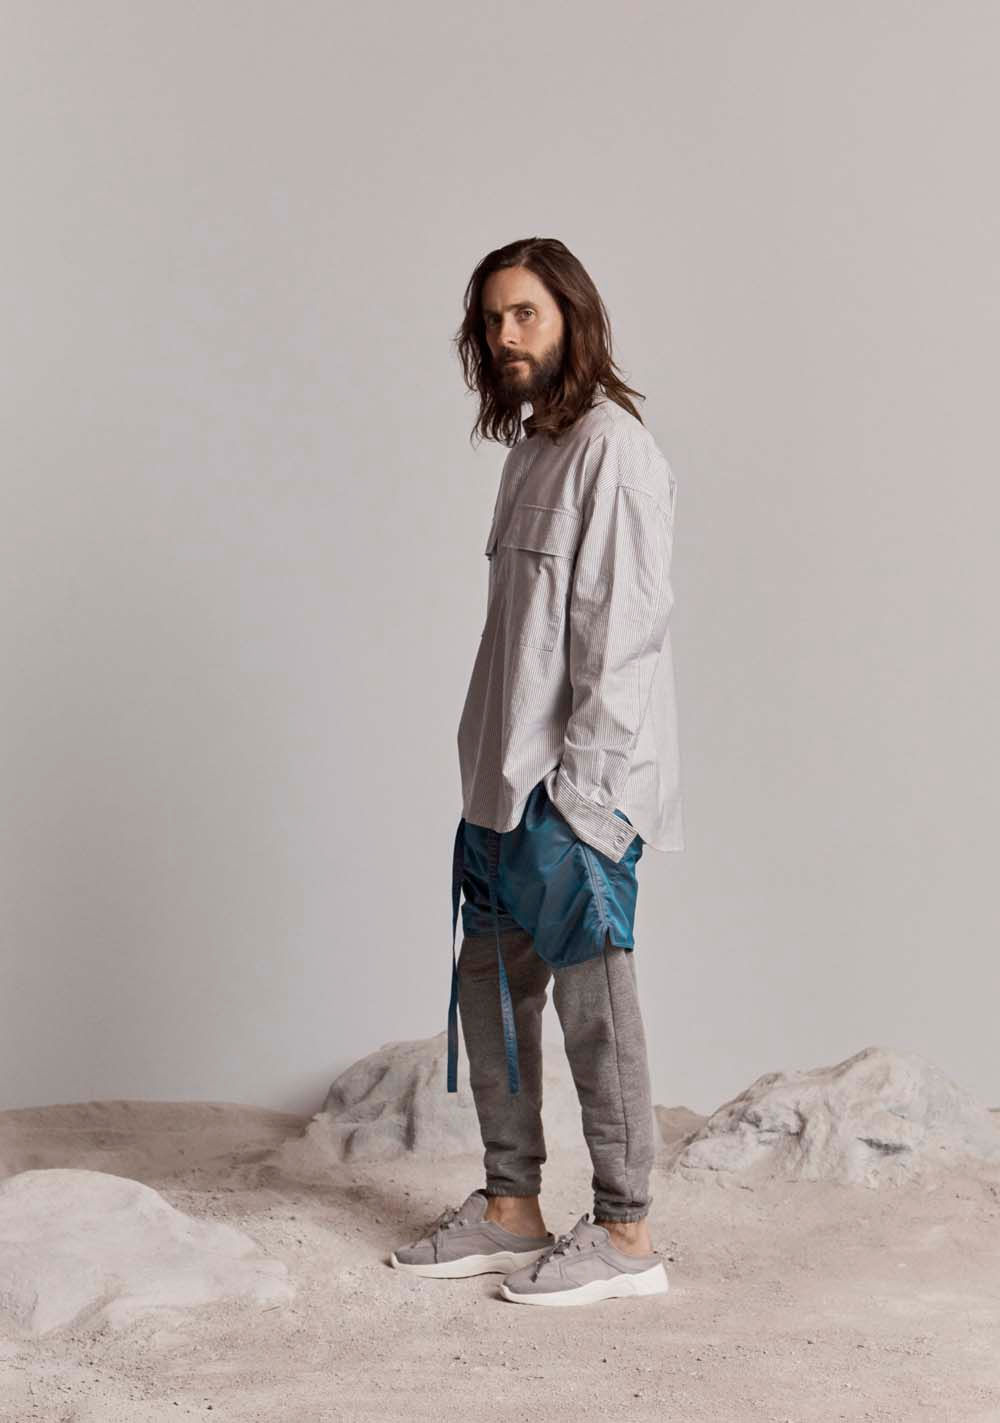 https_%2F%2Fhypebeast.com%2Fimage%2F2018%2F09%2Ffear-of-god-6-sixth-collection-jared-leto-nike-49.jpg